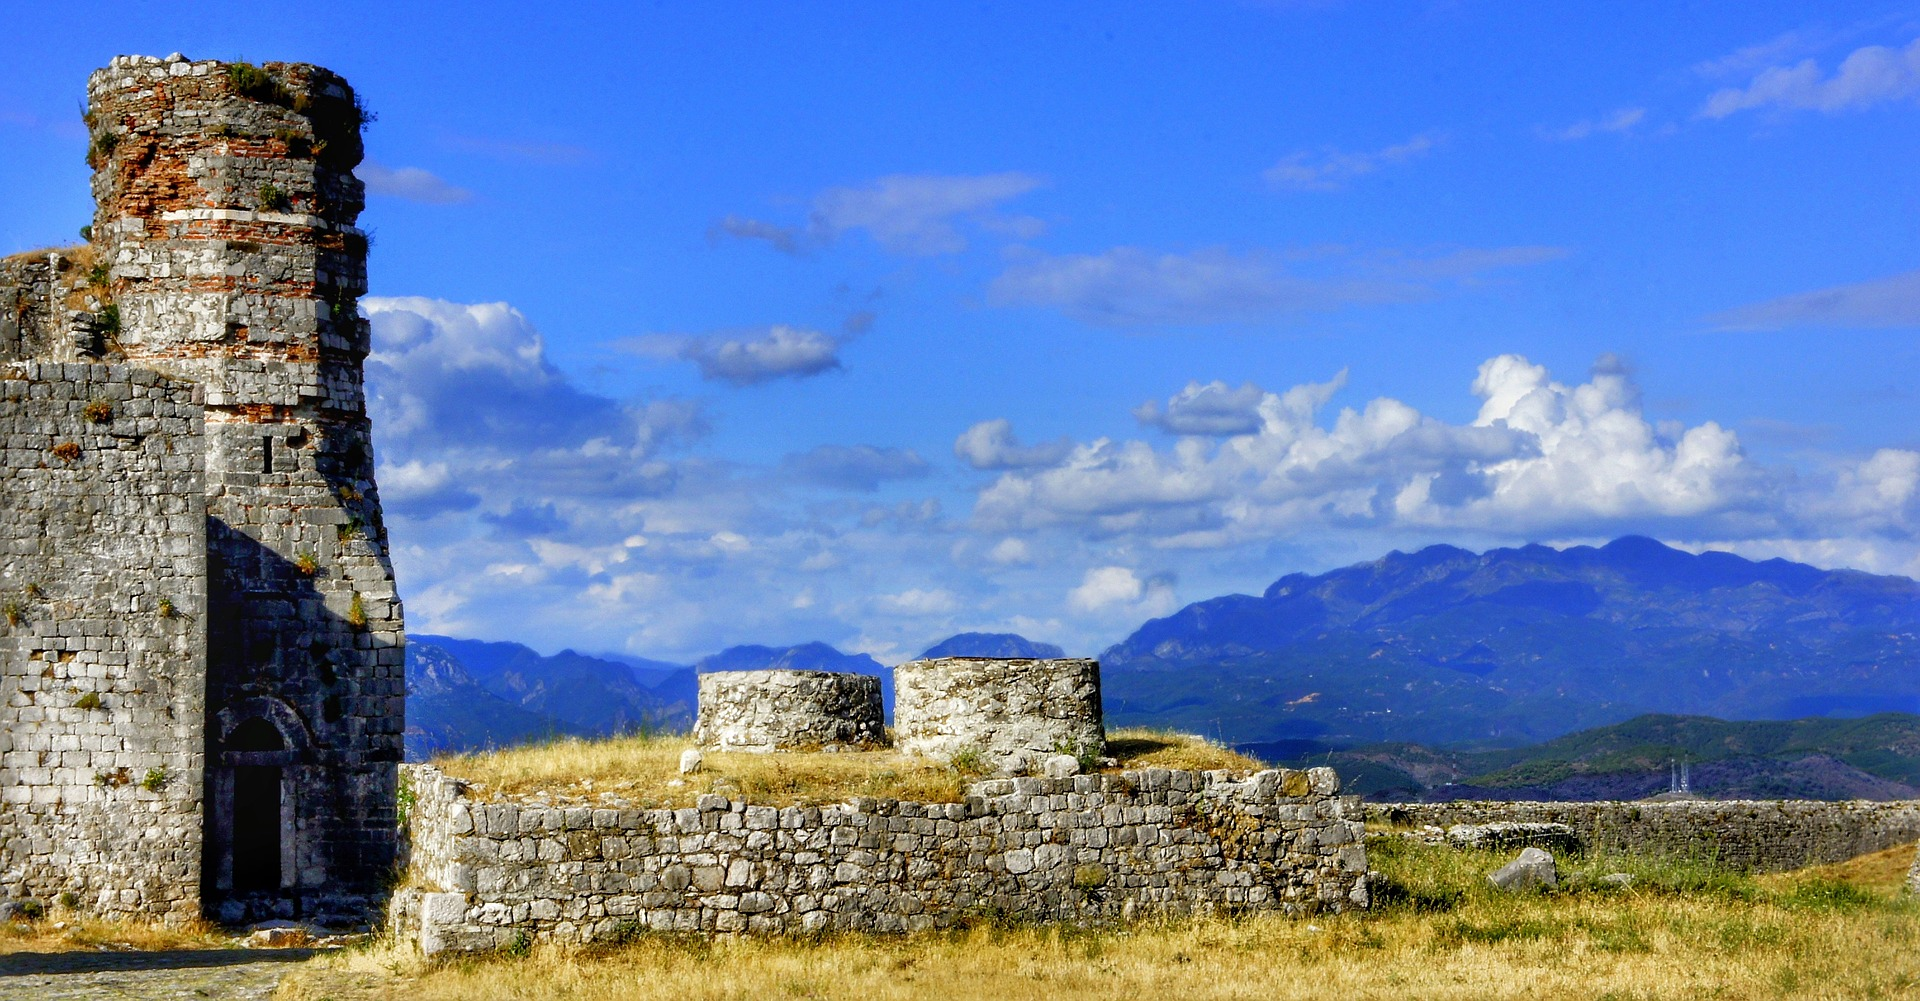 Ruins of a castle with mountains in the distance